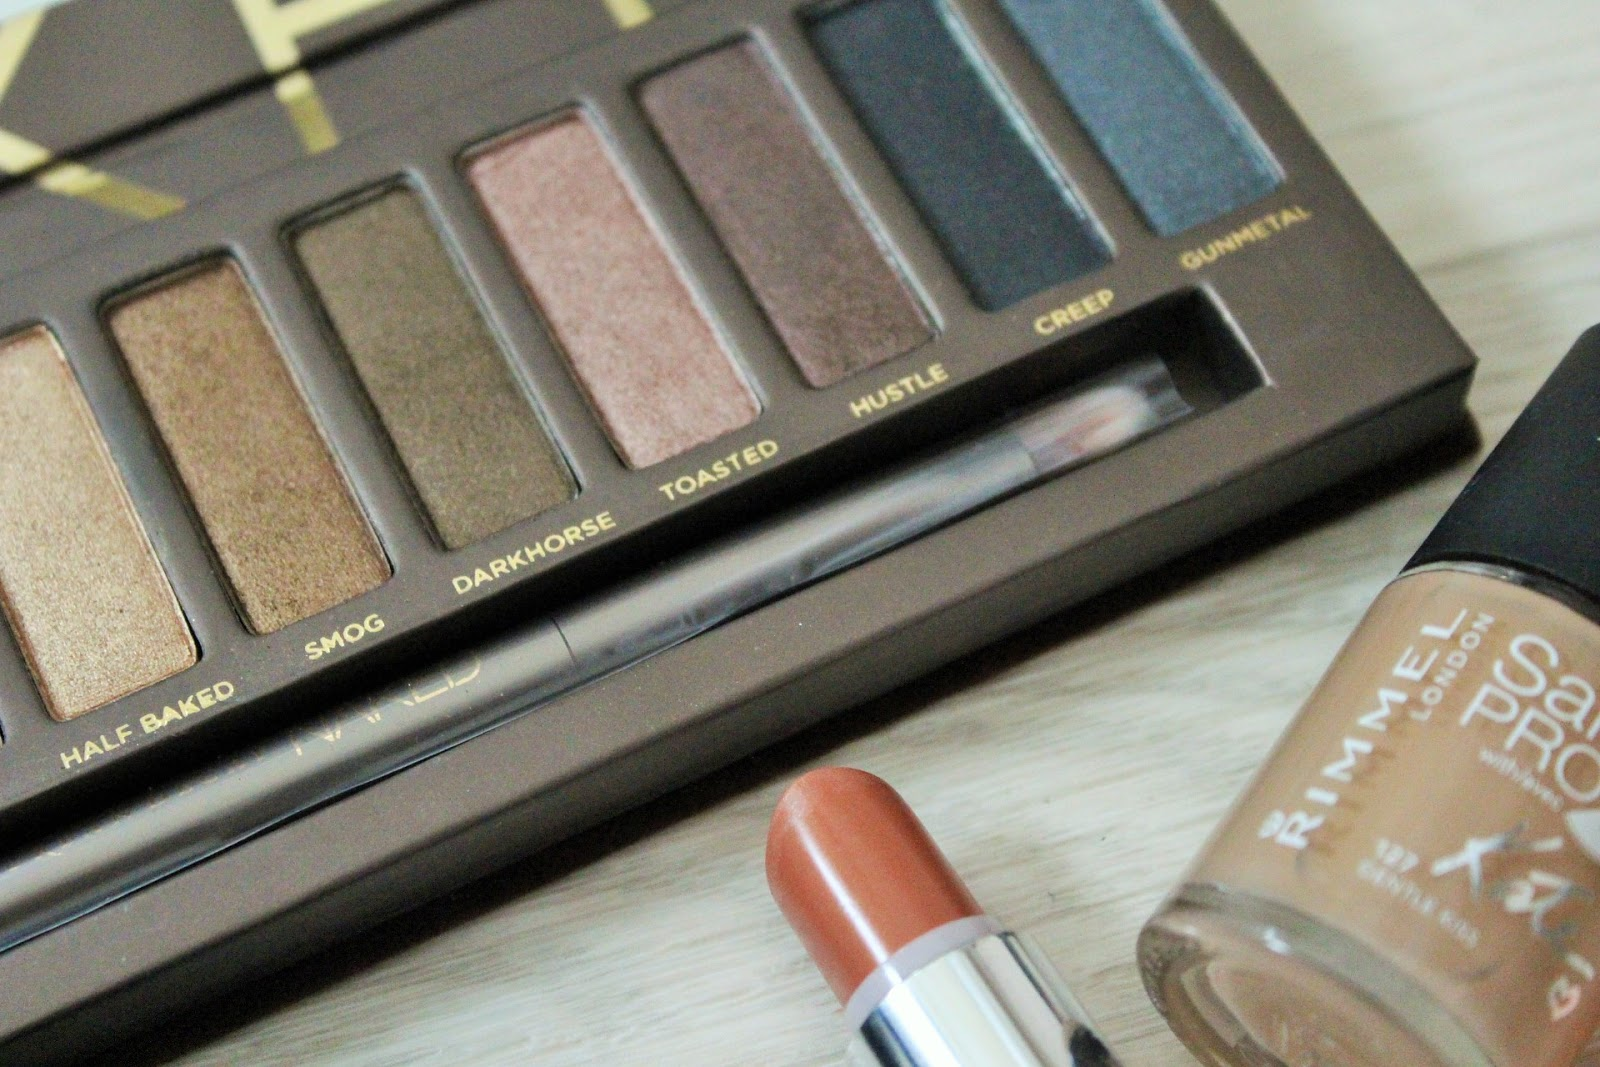 Nude makeup look featuring Urban Decay Naked Palette shade Toasted